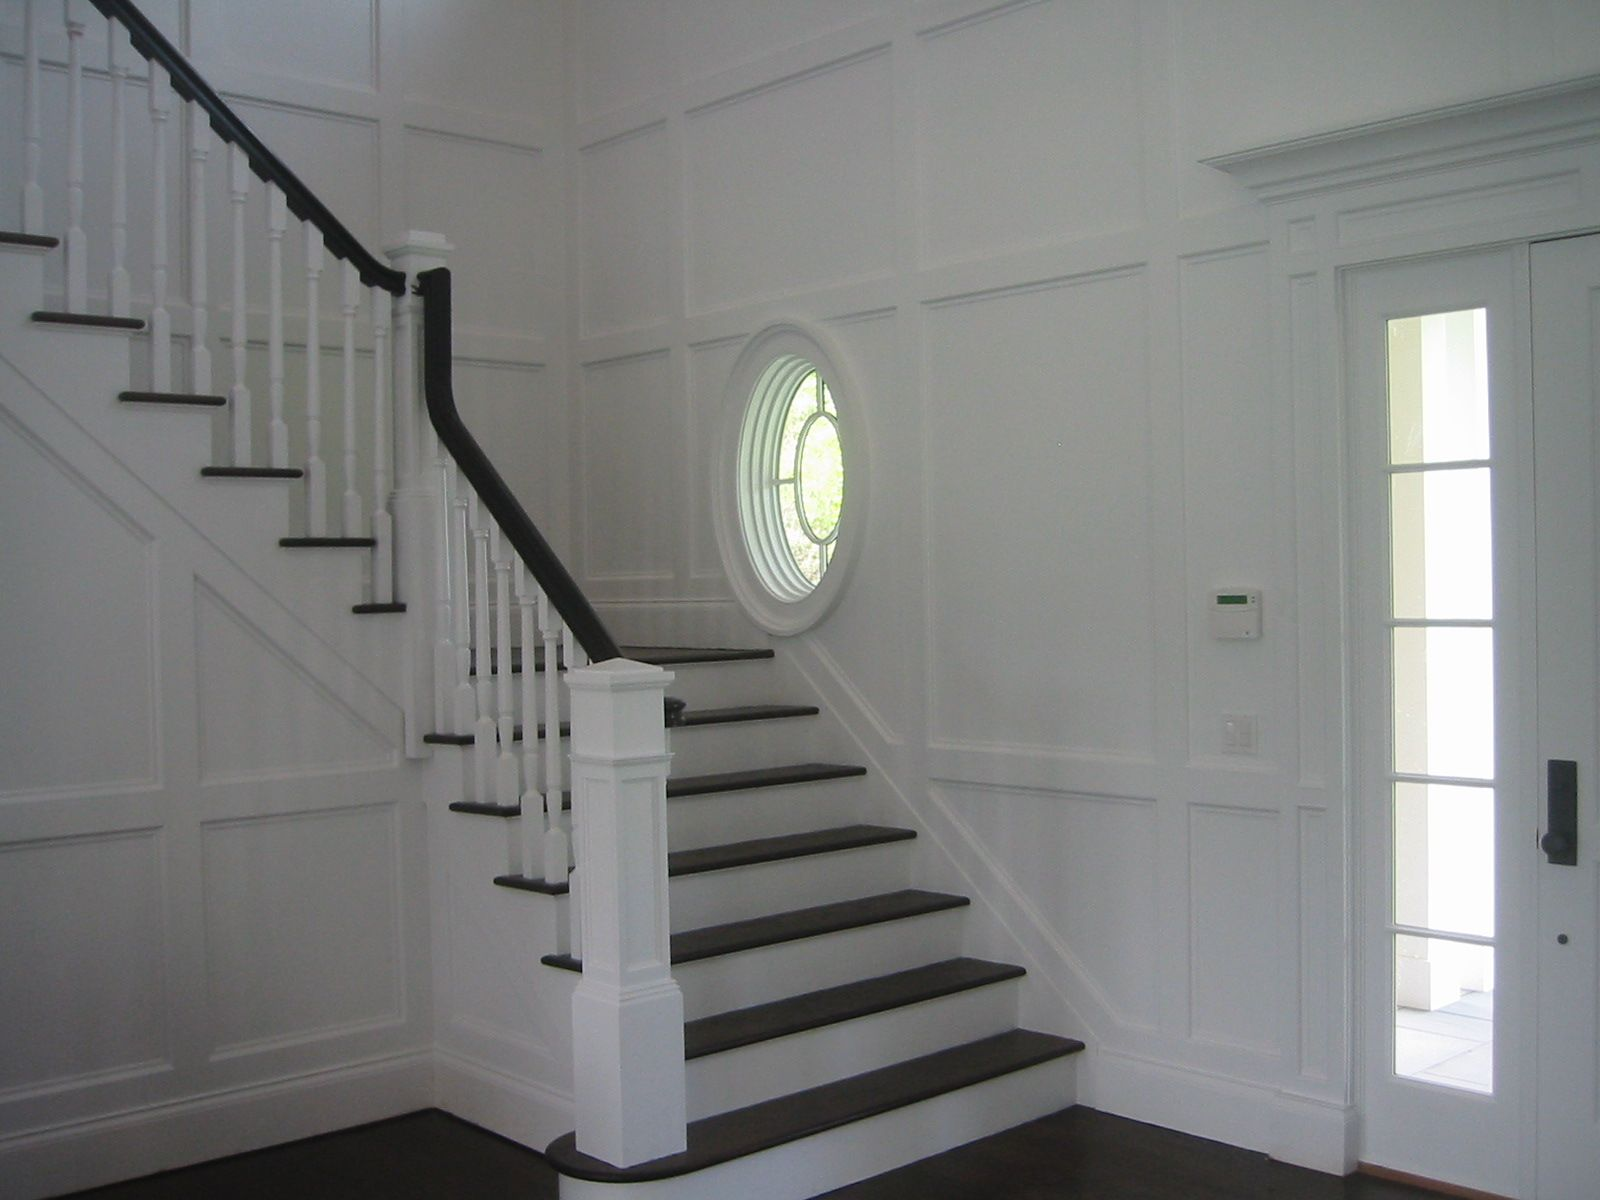 L Shaped Staircase With Eliptical Window At Landing L Shaped